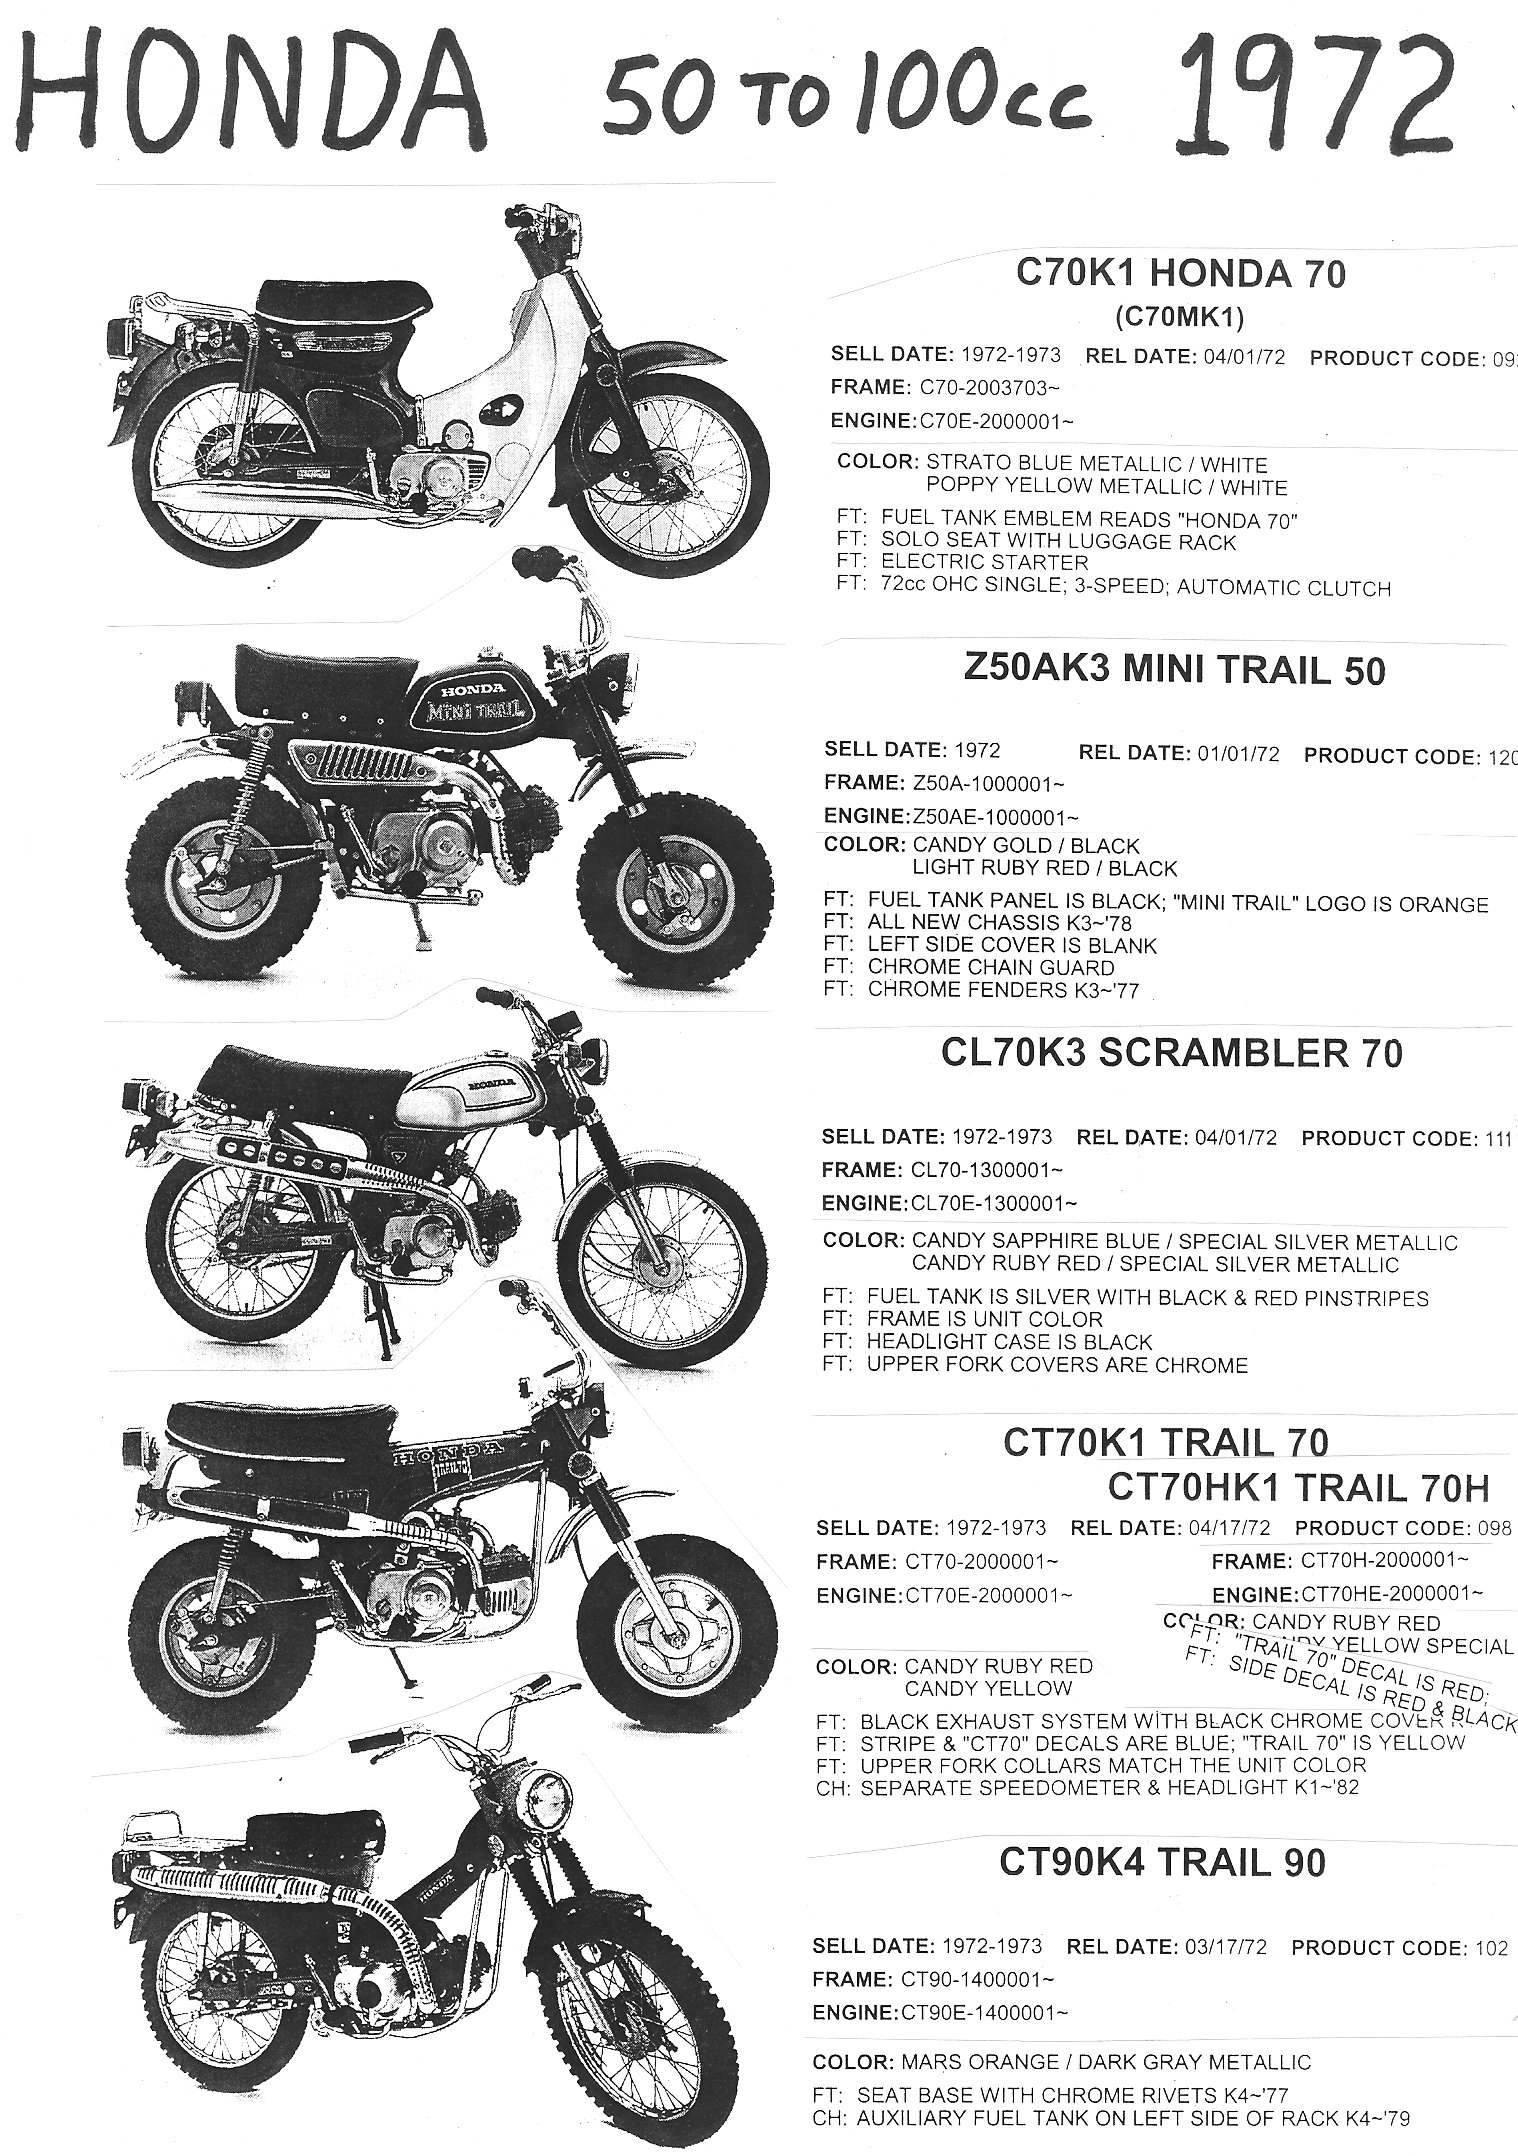 Honda Parts Myrons Mopeds Stratocaster Grease Bucket Tone Wiring Schematics 1972